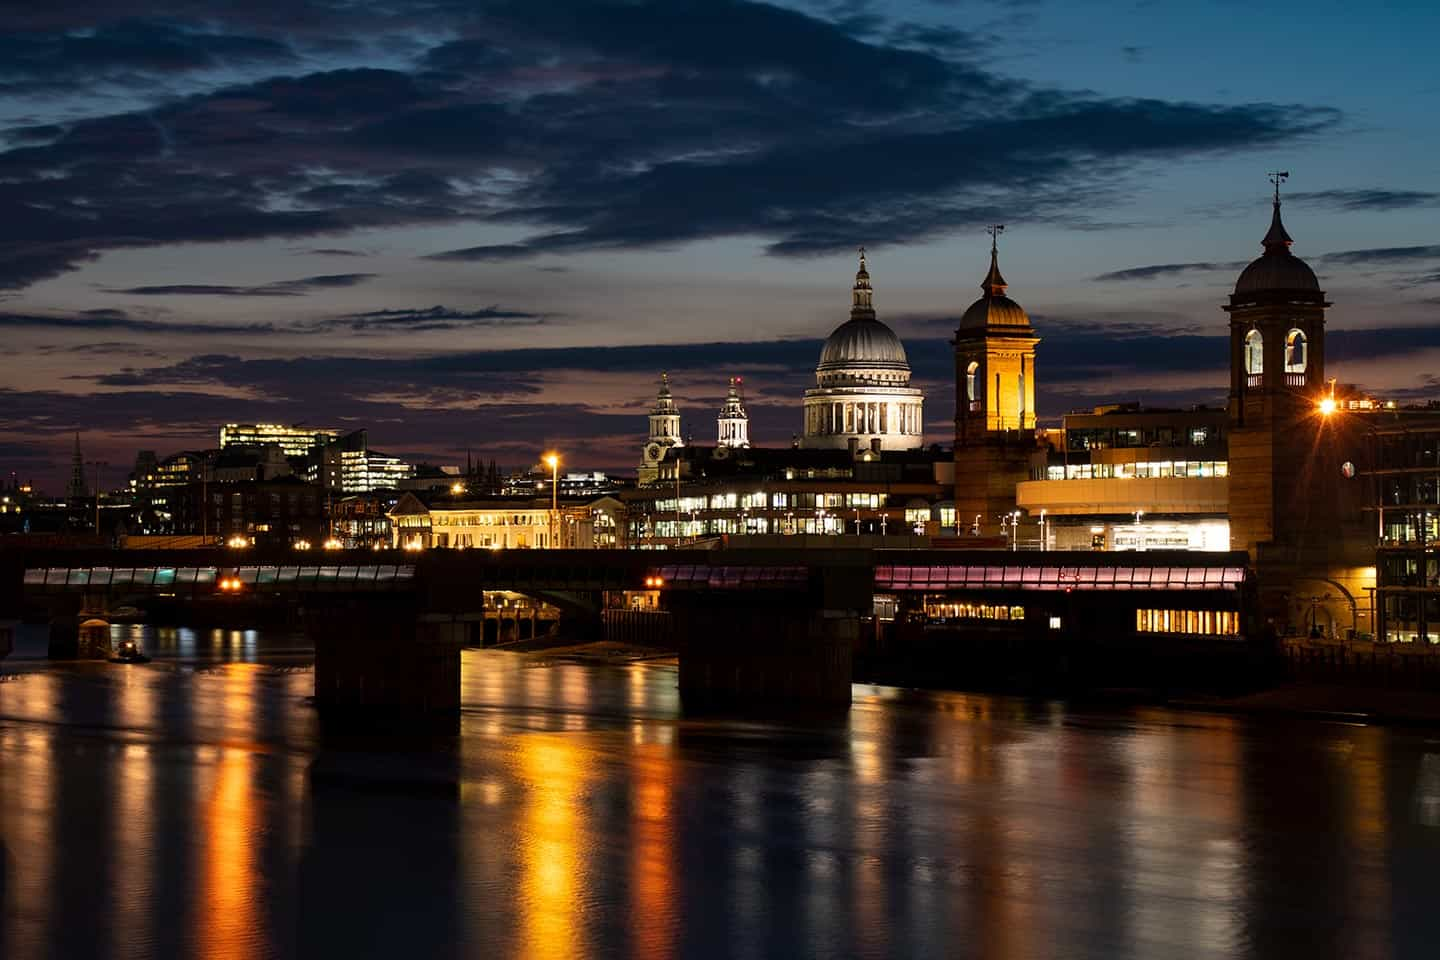 Image of St Paul's and the Cannon Street Railway Bridge, seen from London bridge at night